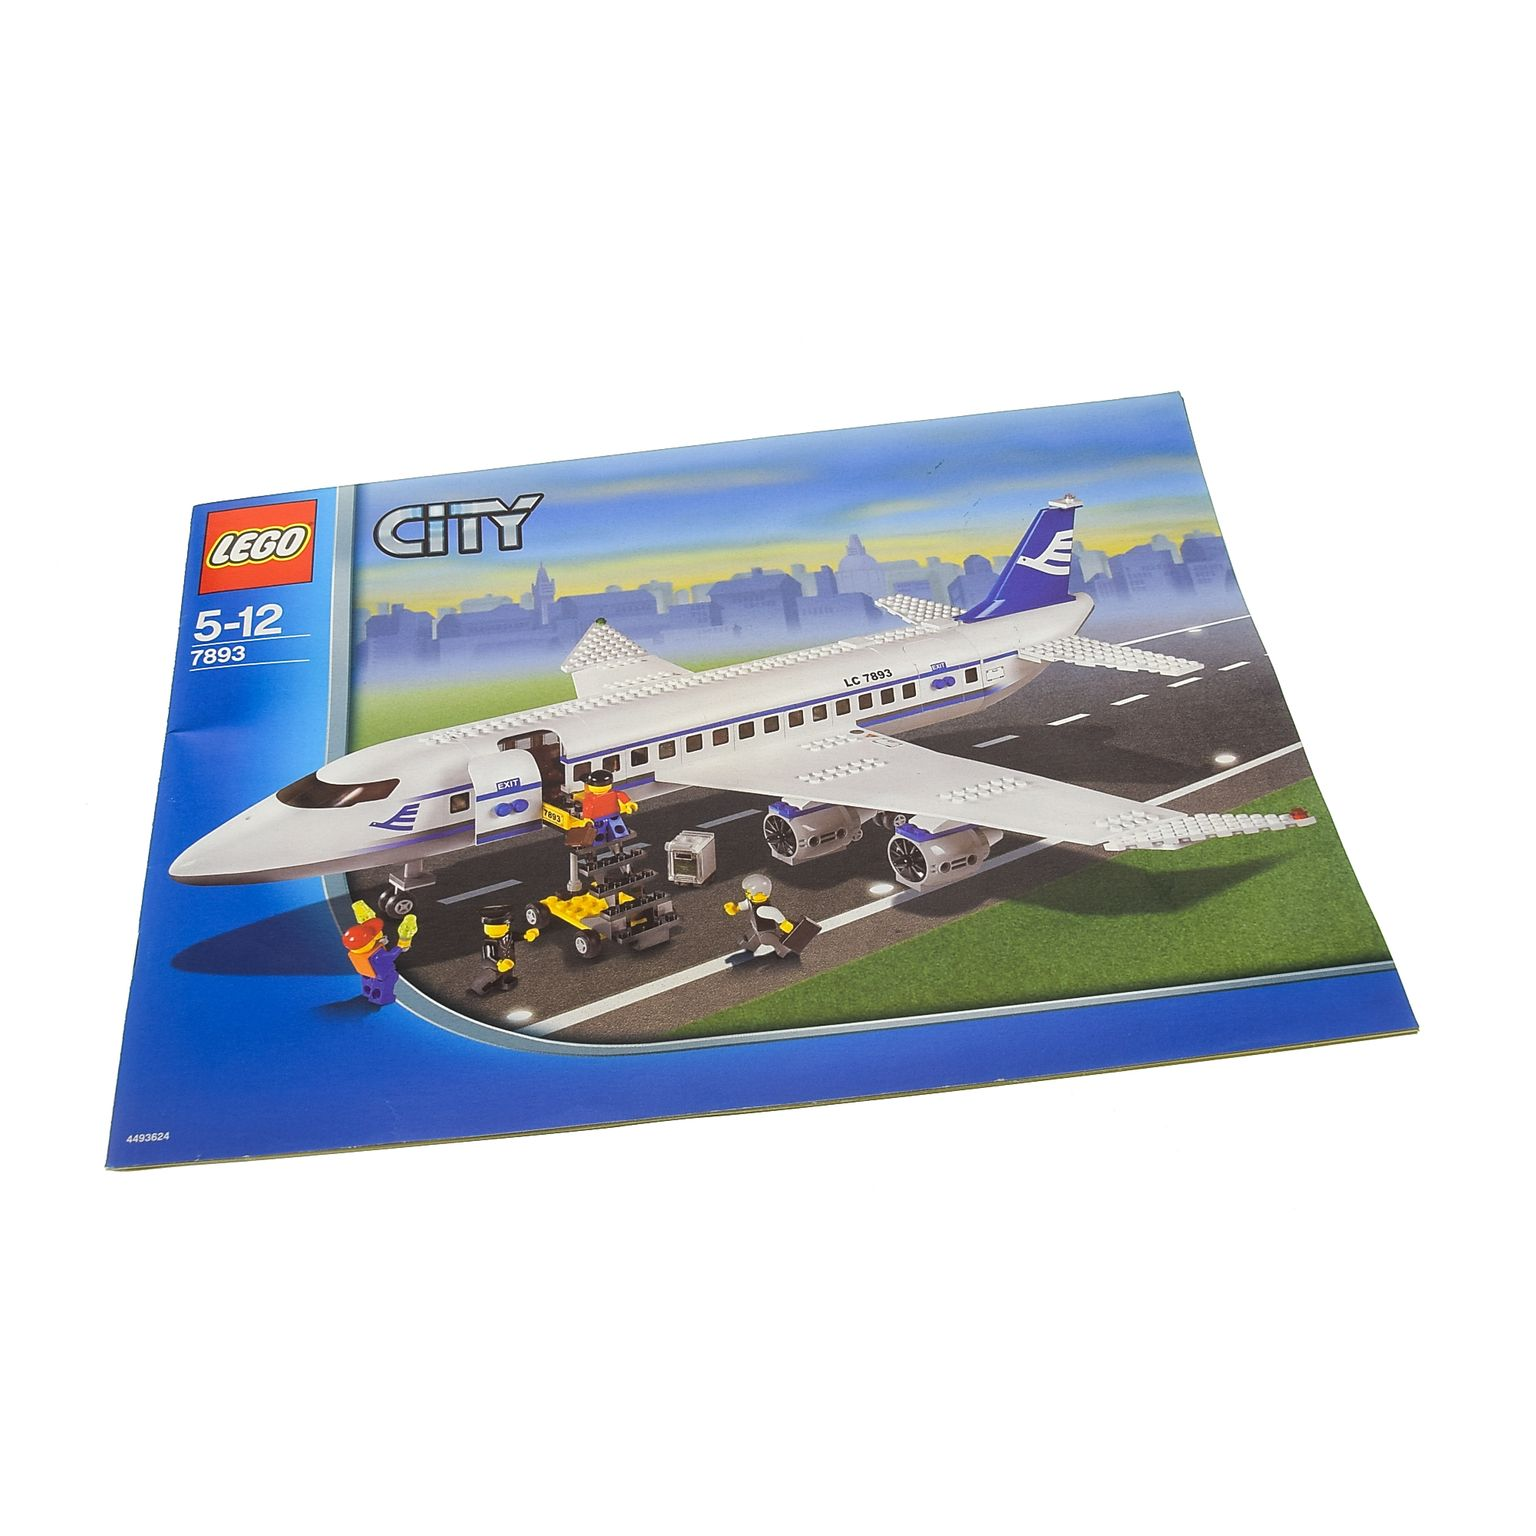 Lego 7893 Instructions Image Collections Form 1040